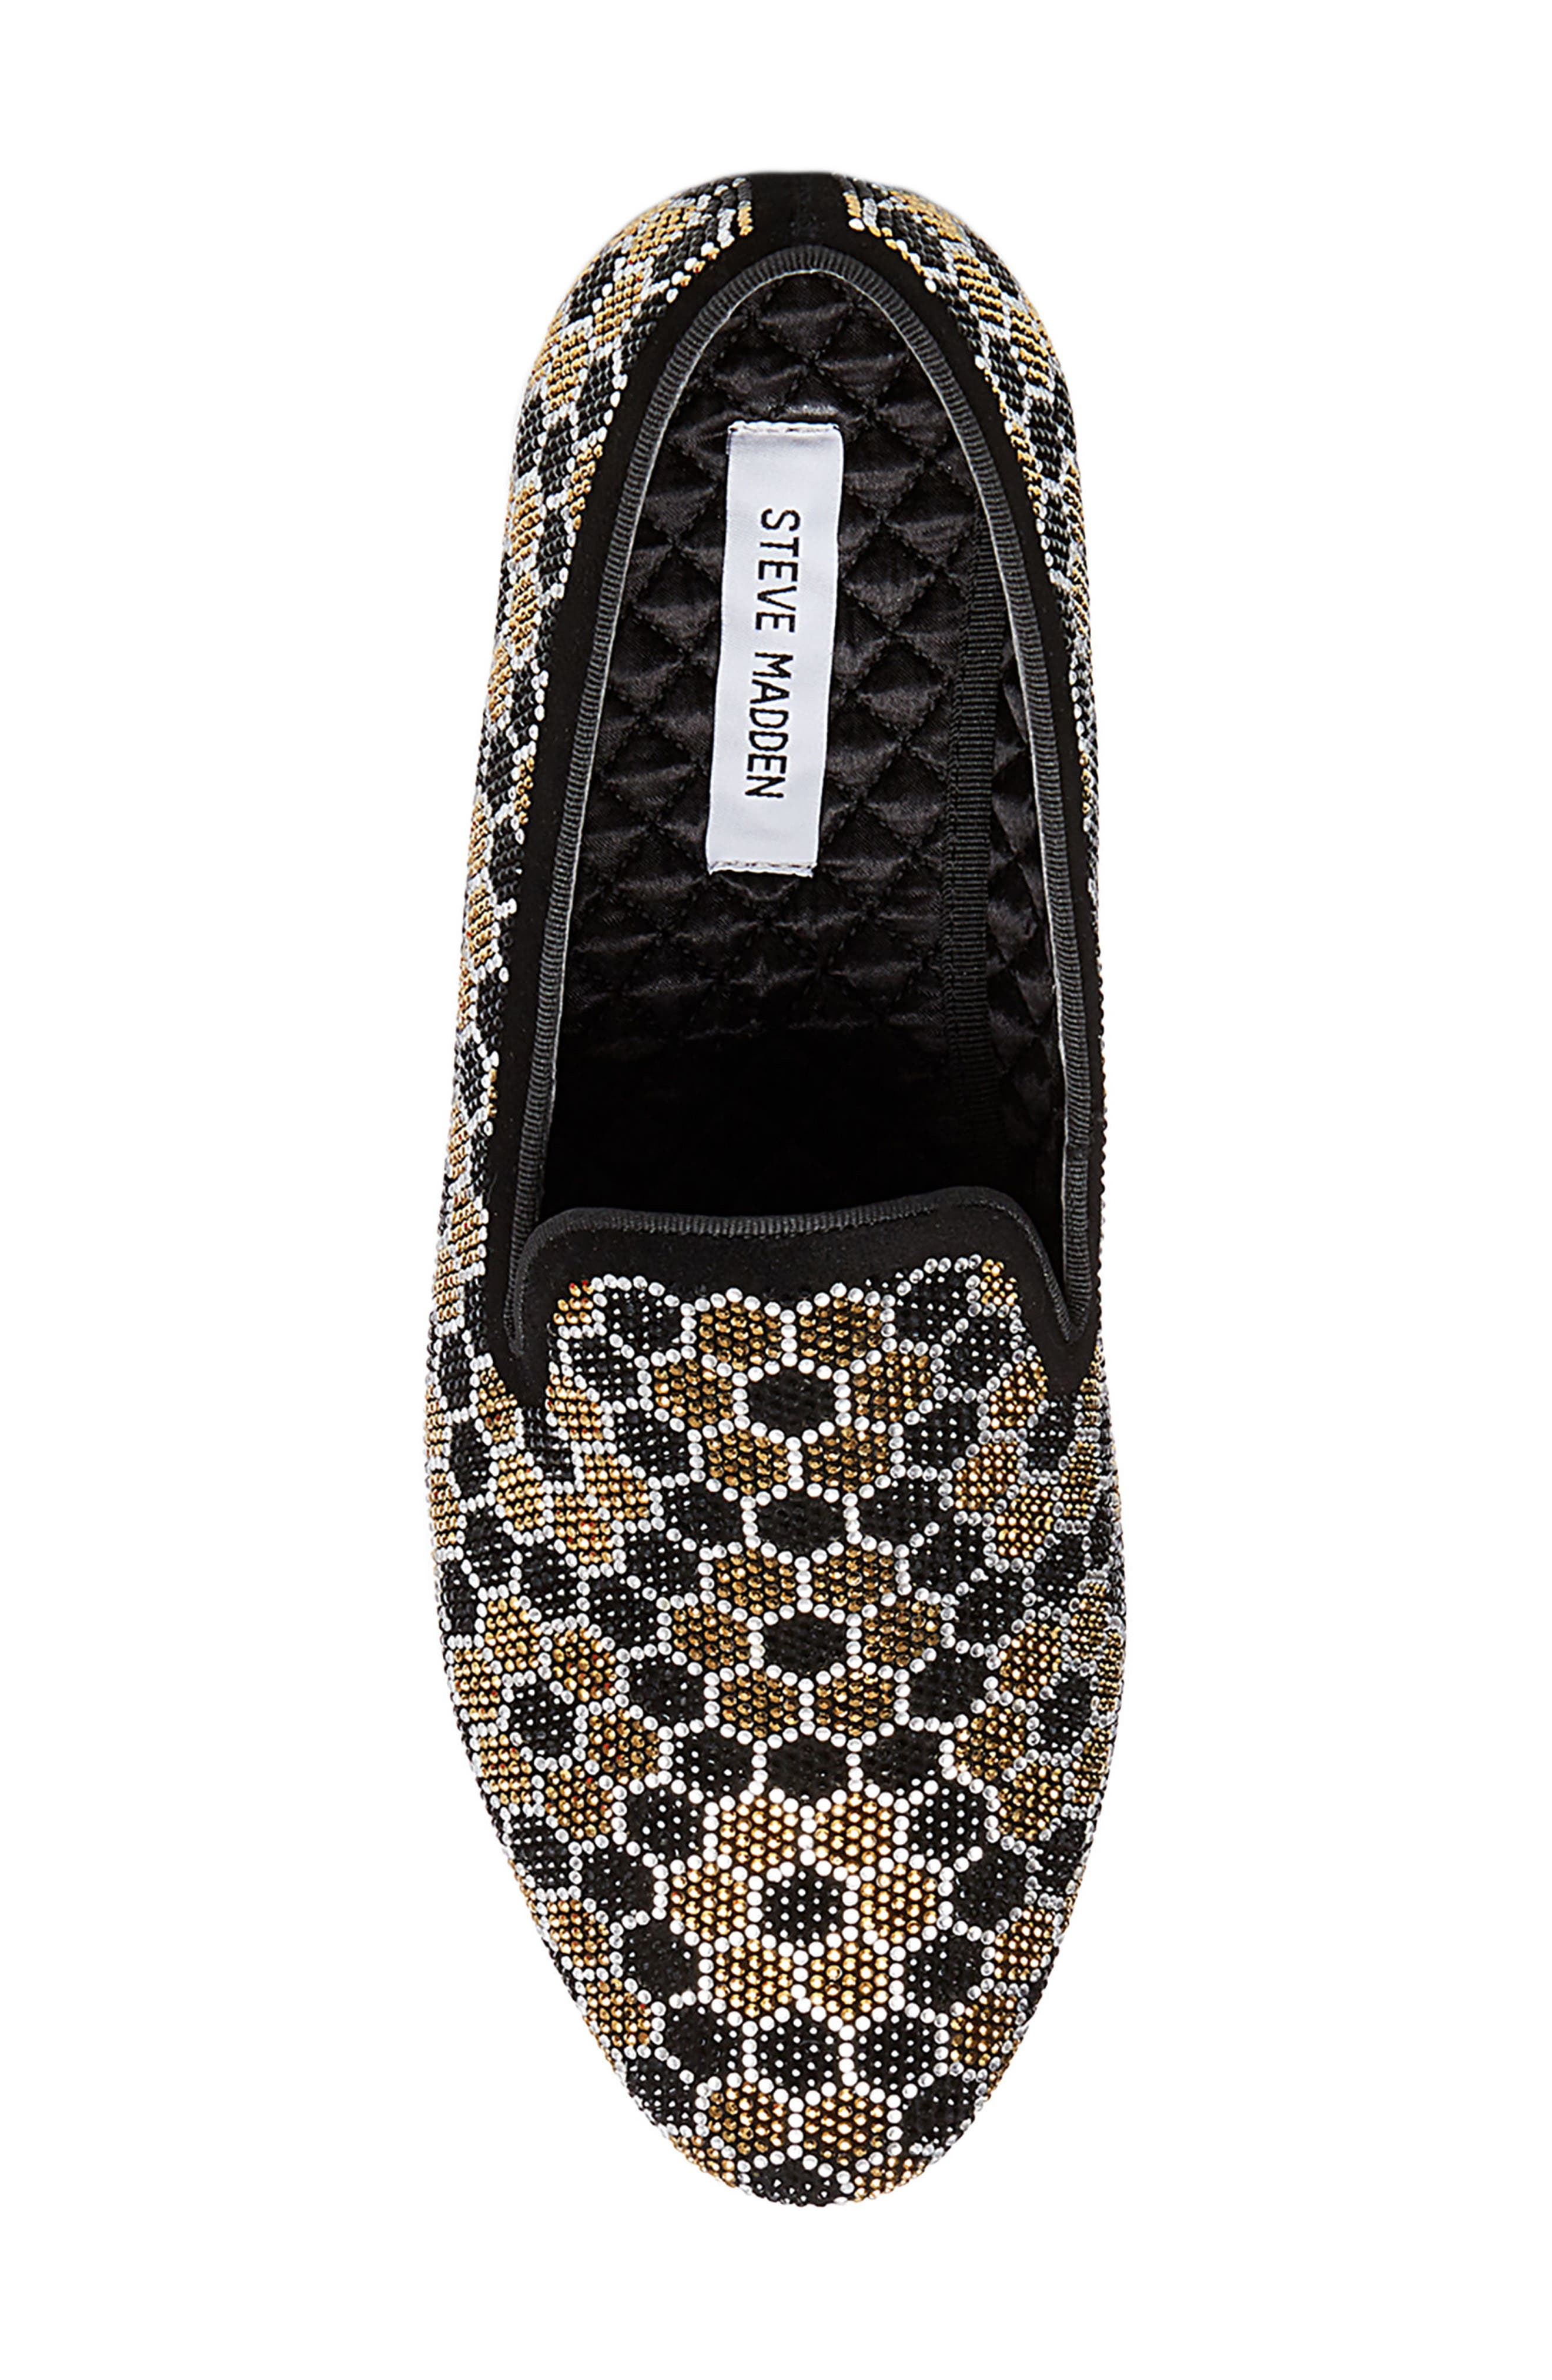 Caspian Studded Venetian Loafer,                             Alternate thumbnail 5, color,                             003